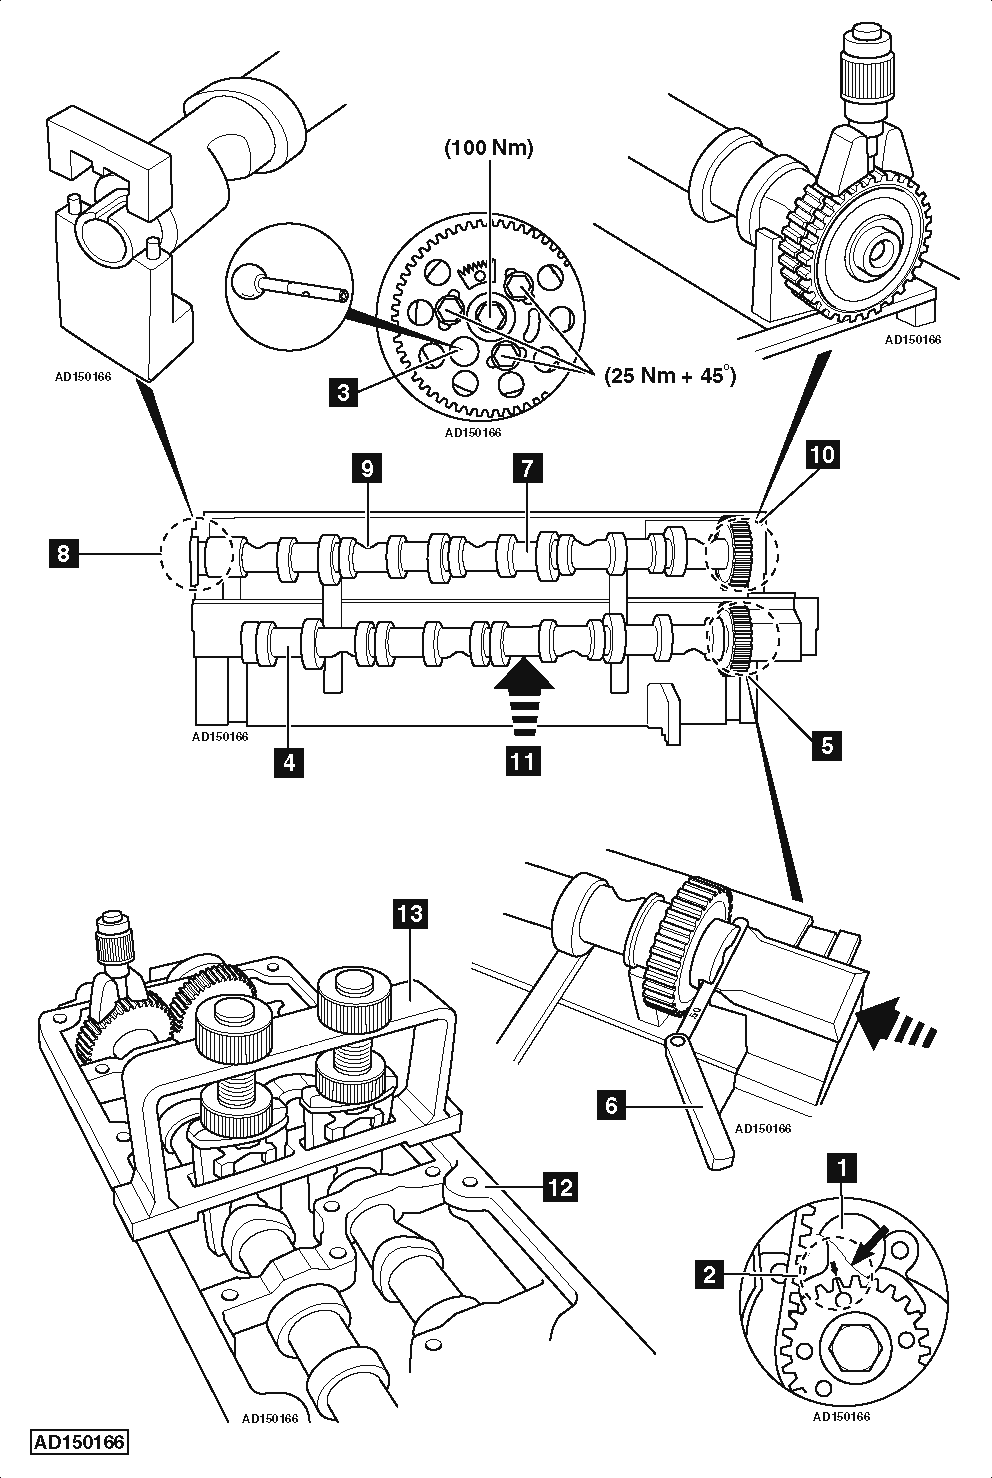 1 6 Tdi Engine Diagram Enthusiast Wiring Diagrams Vw 2 8 Audi Cam 2002 Schematics Elsalvadorla Passat